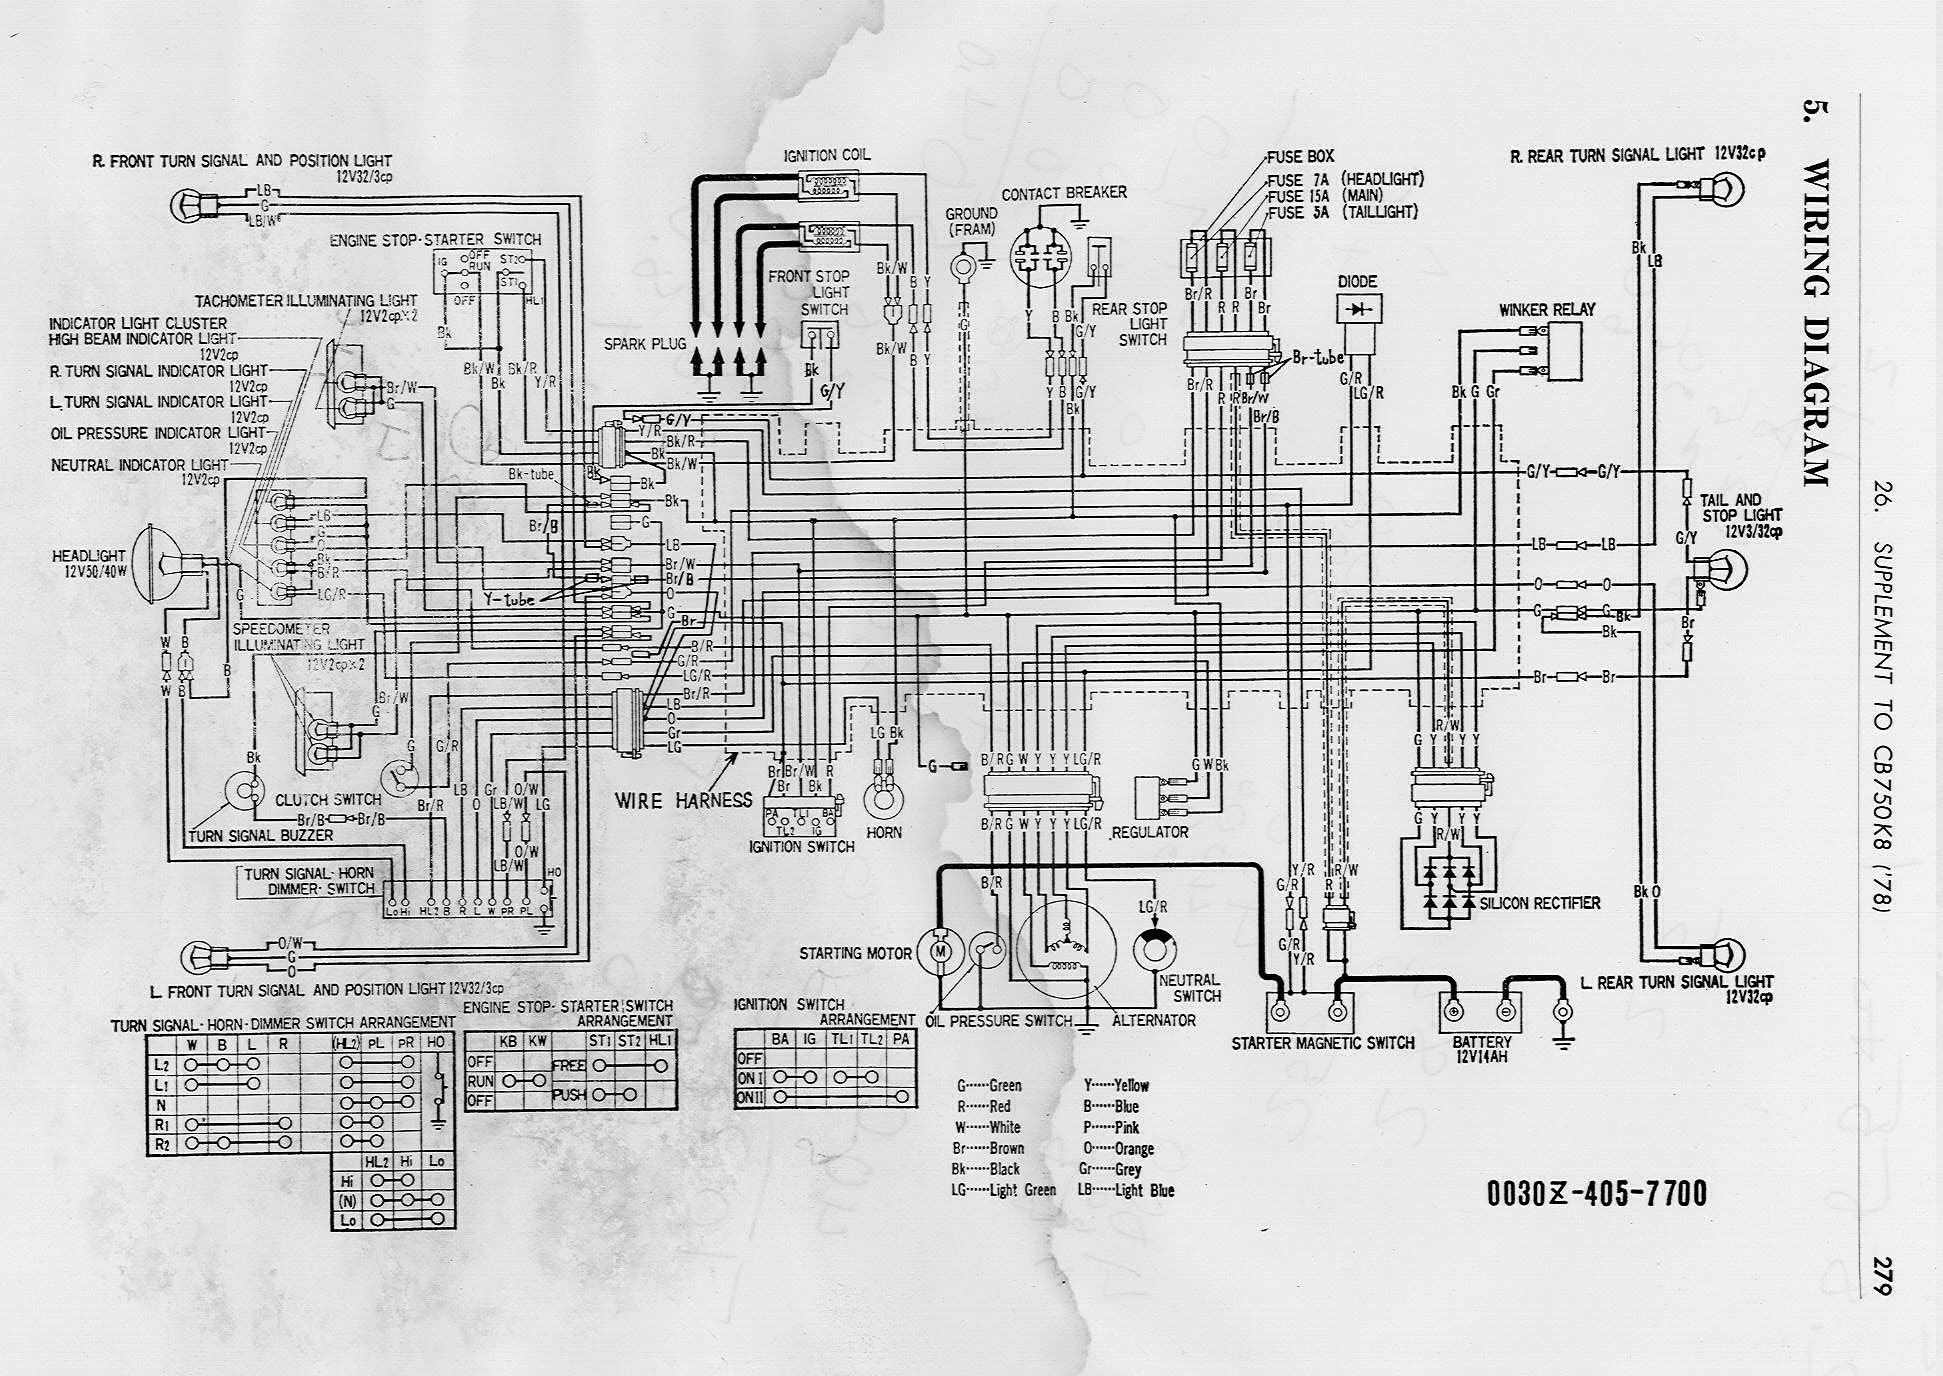 Wiring Diagram For Sunl Quad